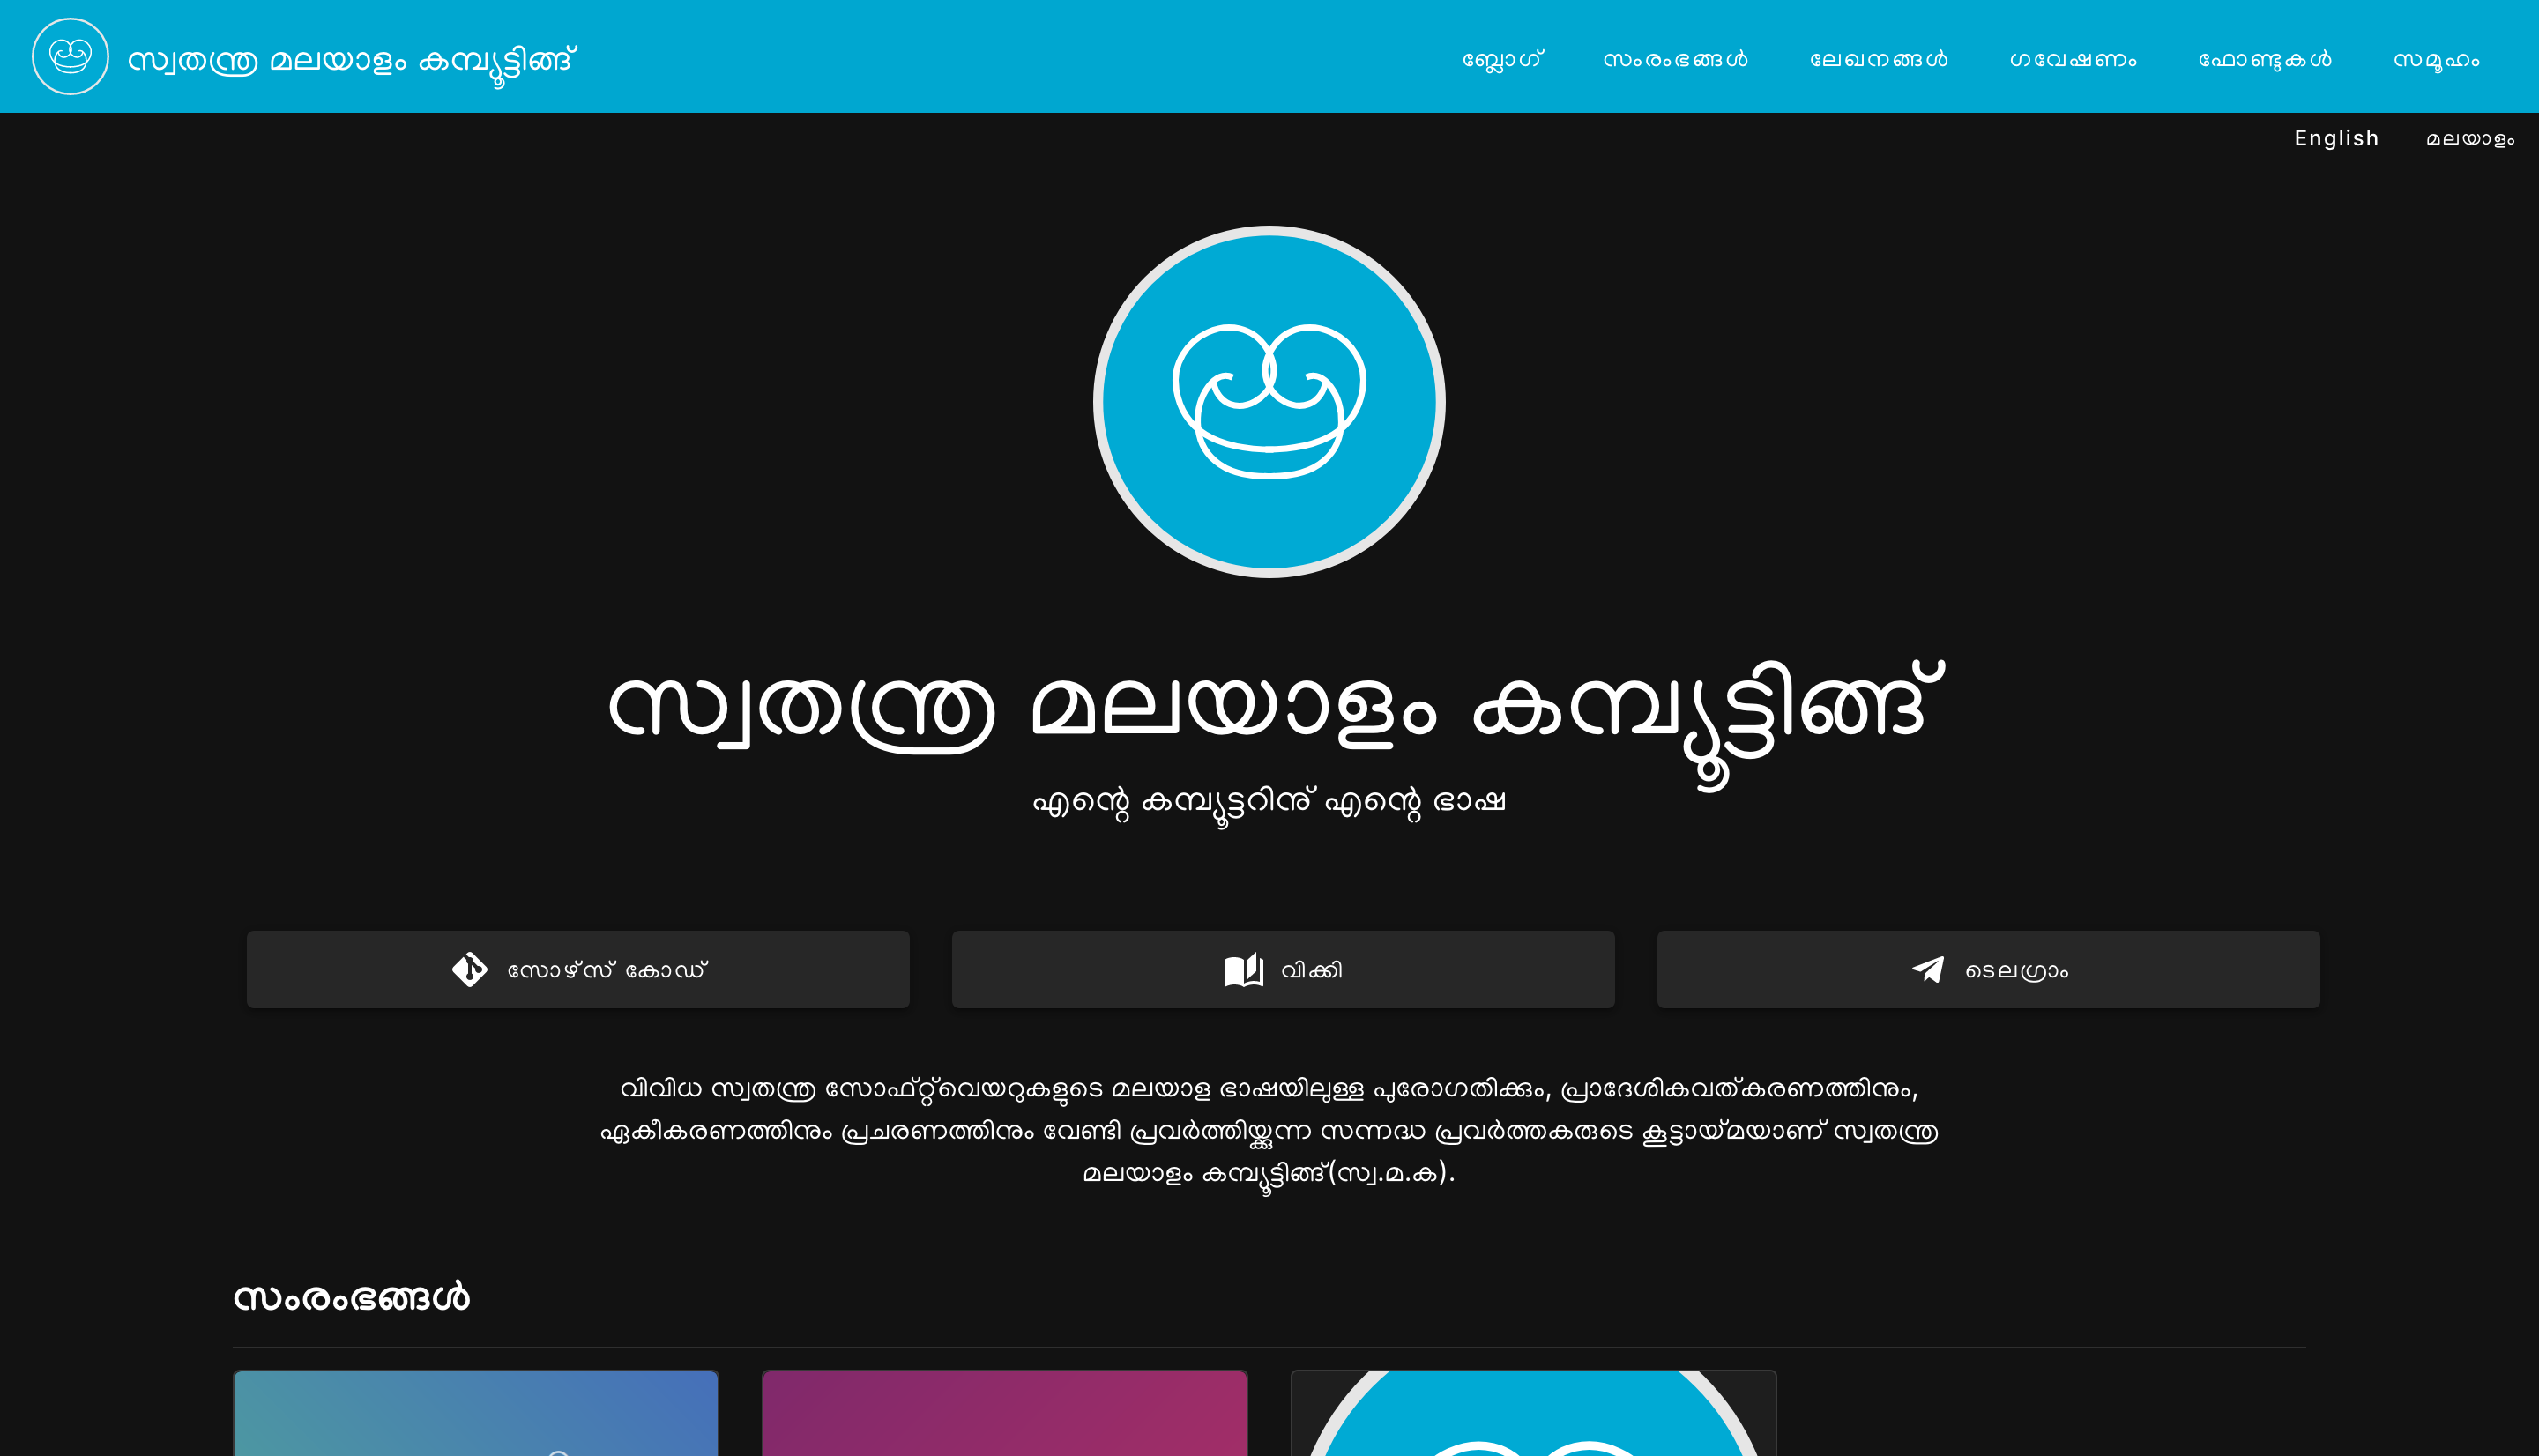 New Website, Manjari v1.800 and More: SMC Monthly Updates April 2020